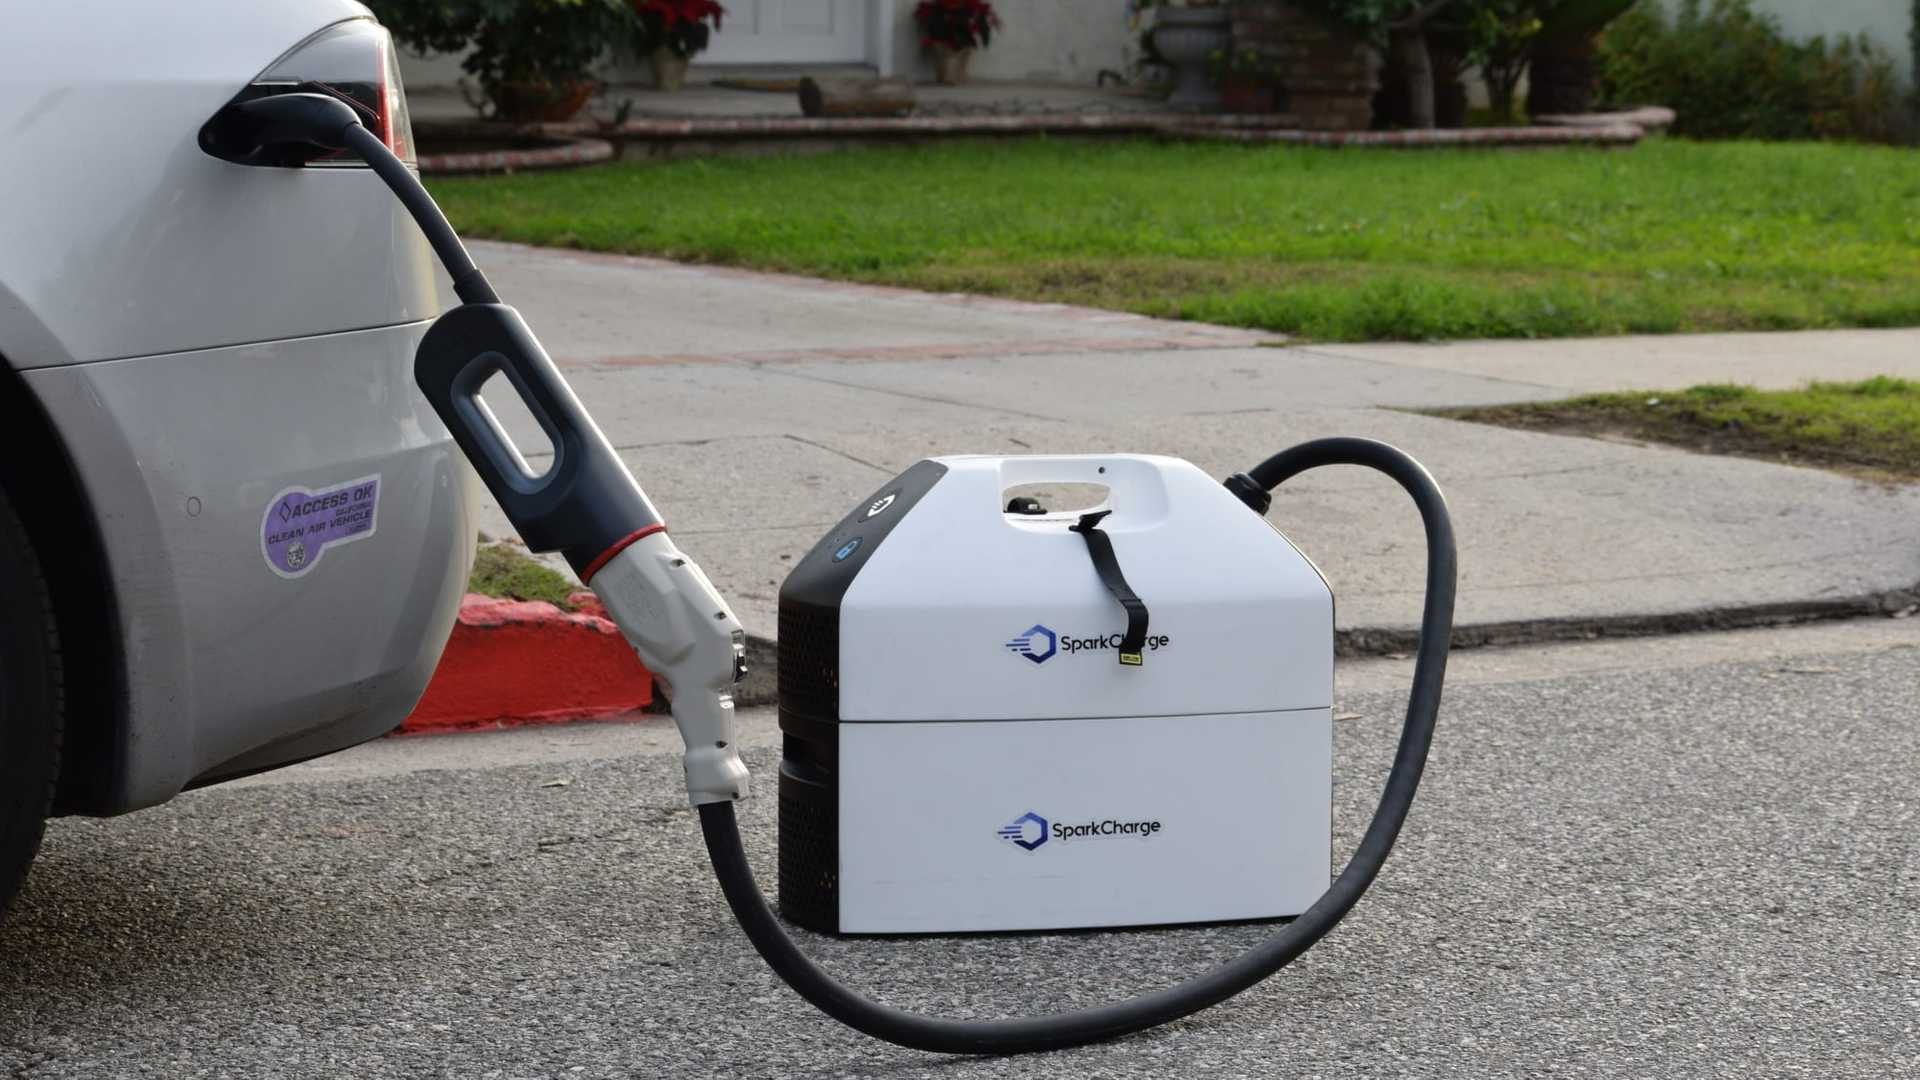 SparkCharge Portable EV Charger